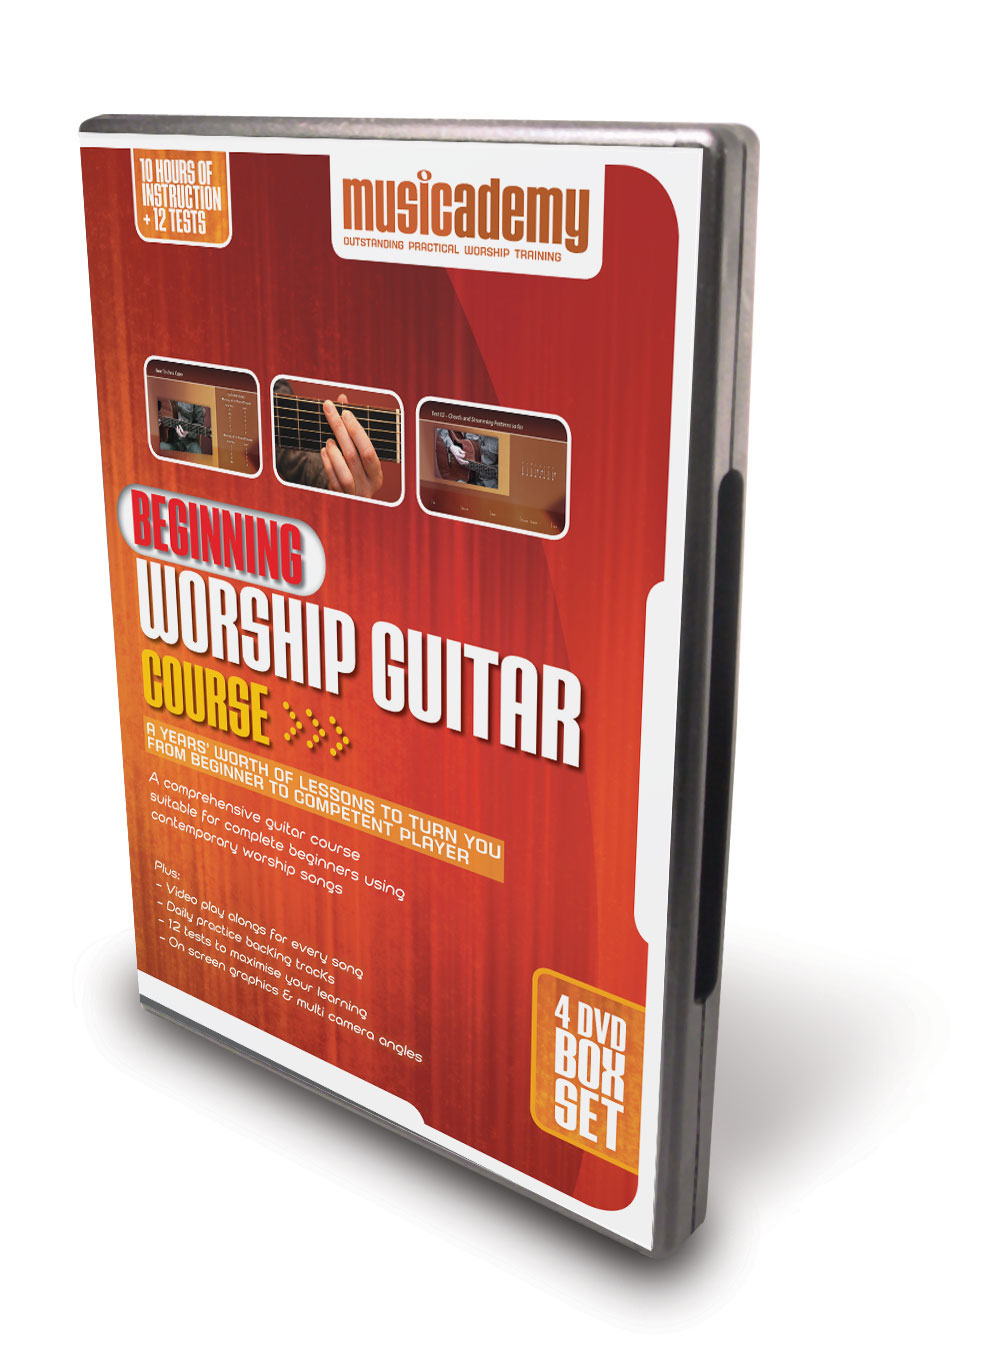 NEW Beginning Worship Guitar Course